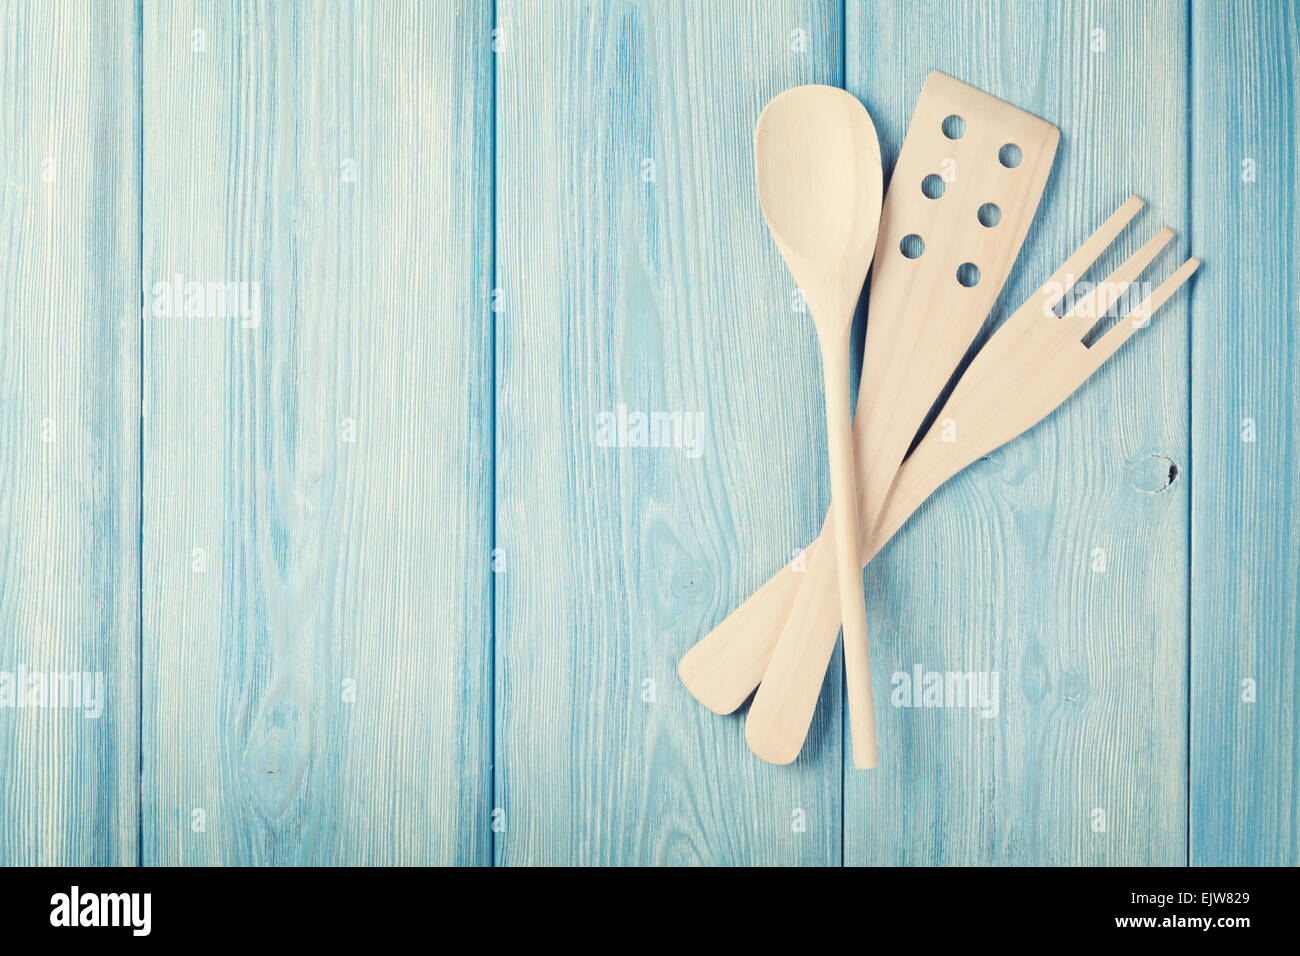 Kitchen cooking utensils over wooden table background. Top view with ...